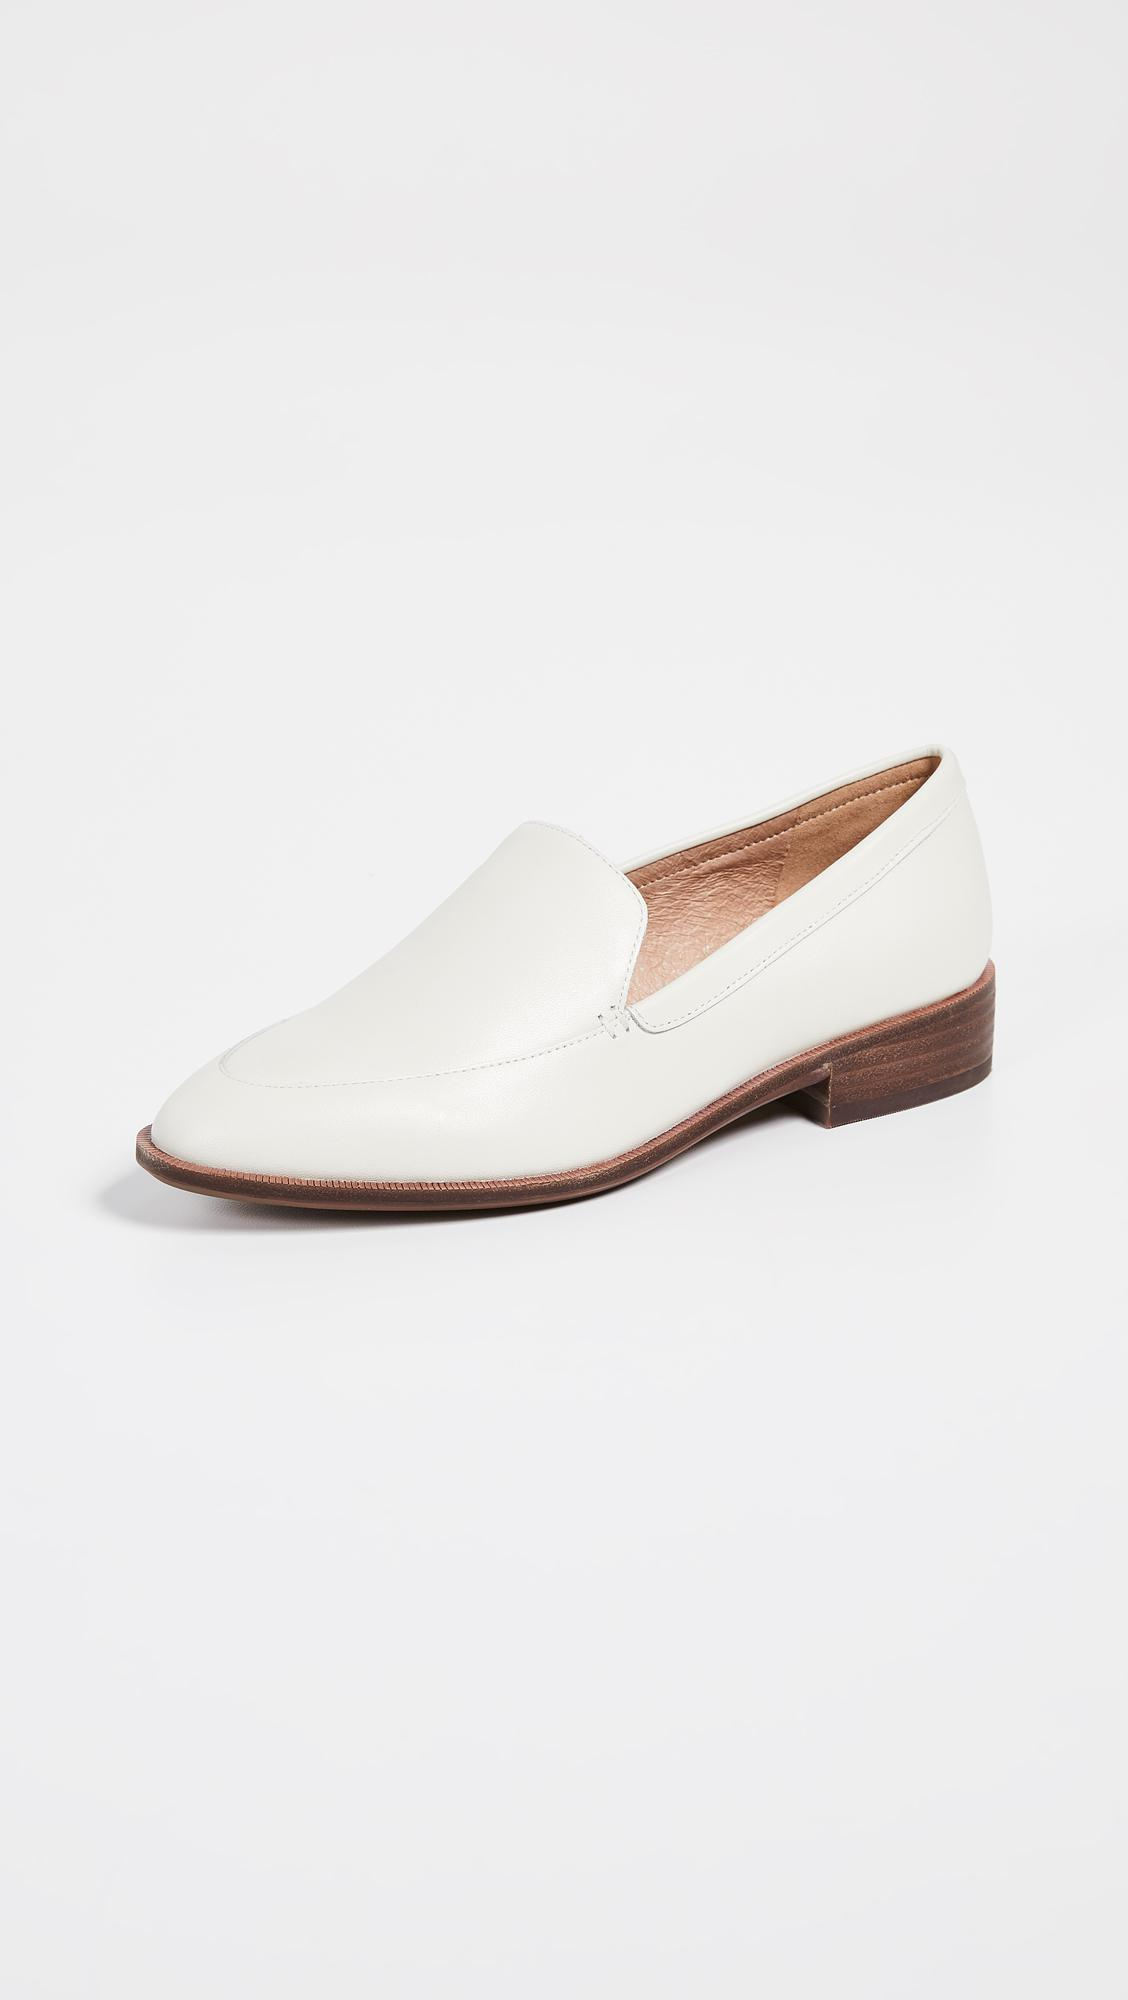 b2c48acc144 Madewell. Women s The Frances Loafers